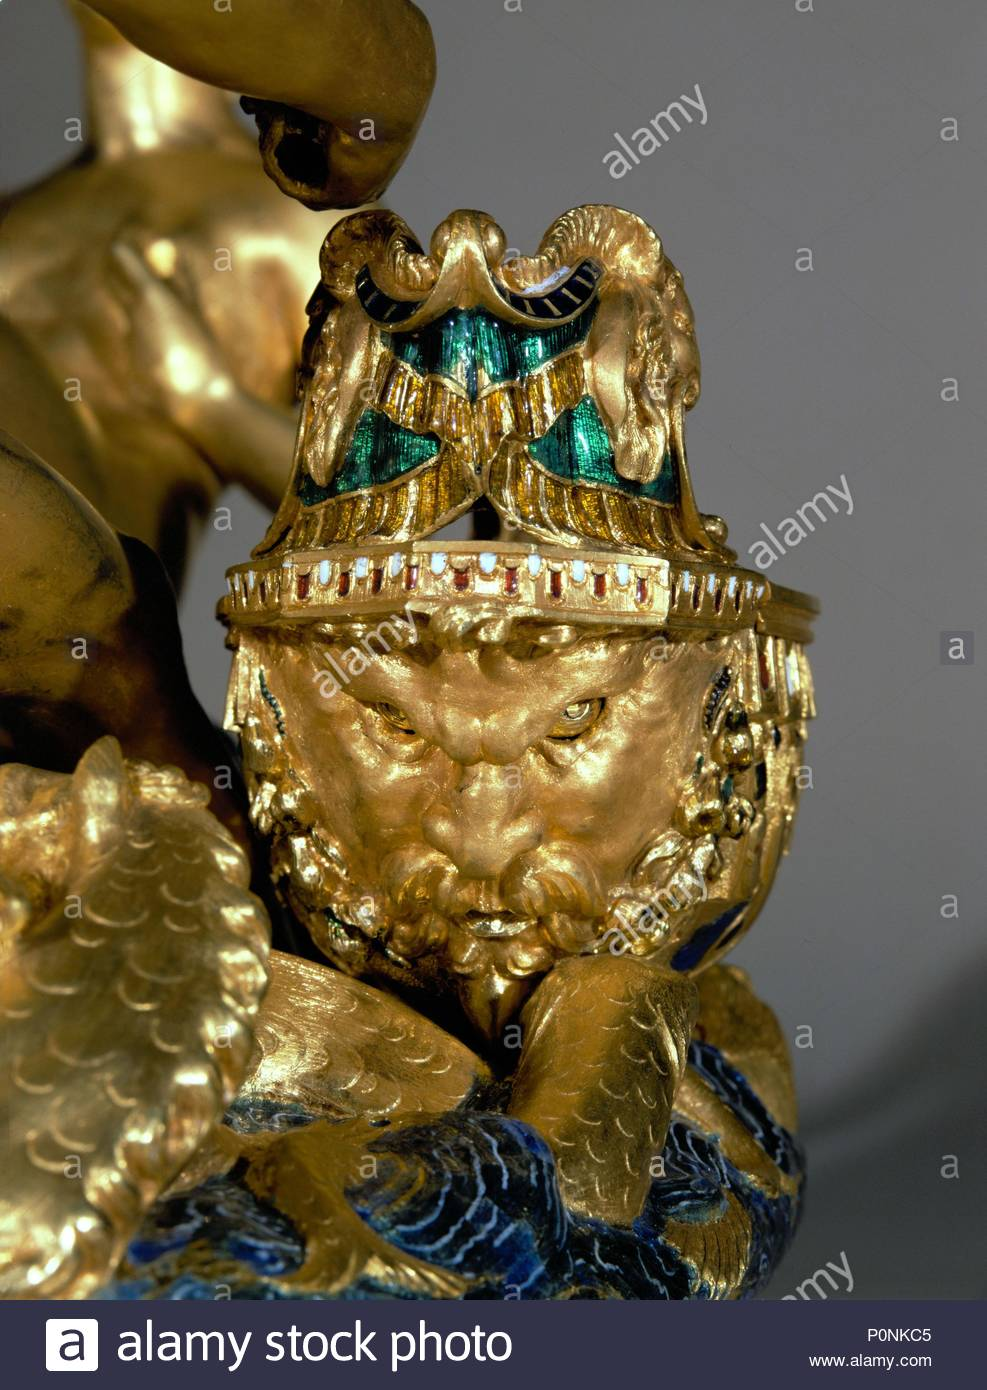 Ship stern in form of grim face. Detail of the saliera (saltcellar) Neptune (sea) and Tellus (earth). Gold, niello work, and ebony base (1540-1543) Height 26 cm Inv. 881. Author: Benvenuto Cellini (1500-1571). Location: Kunsthistorisches Museum, Kunstkammer, Vienna, Austria. - Stock Image